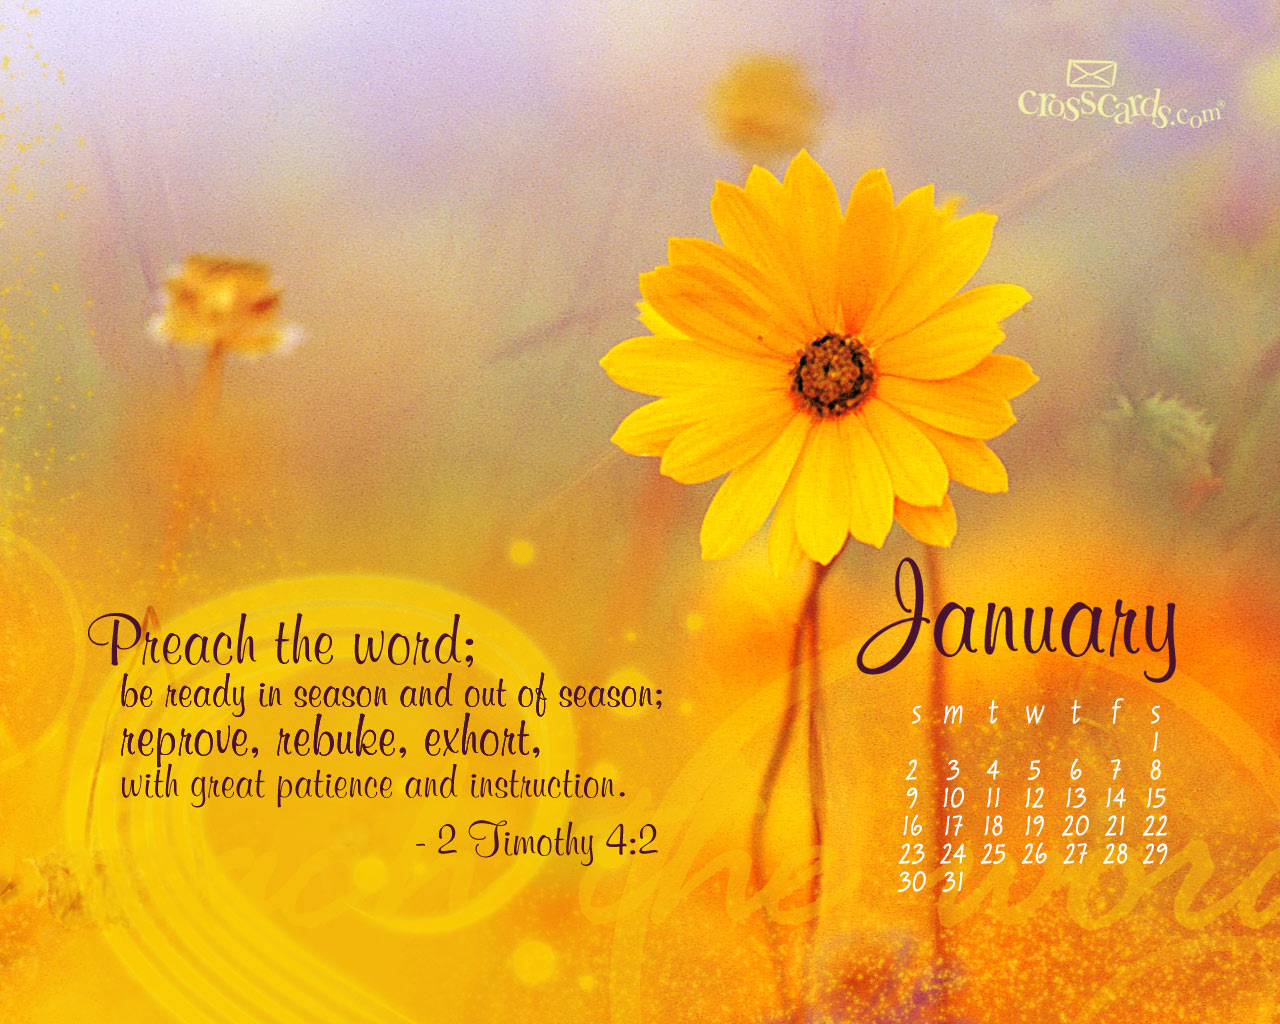 CrossCards Wallpaper Monthly Calendars January 2015 1280x1024